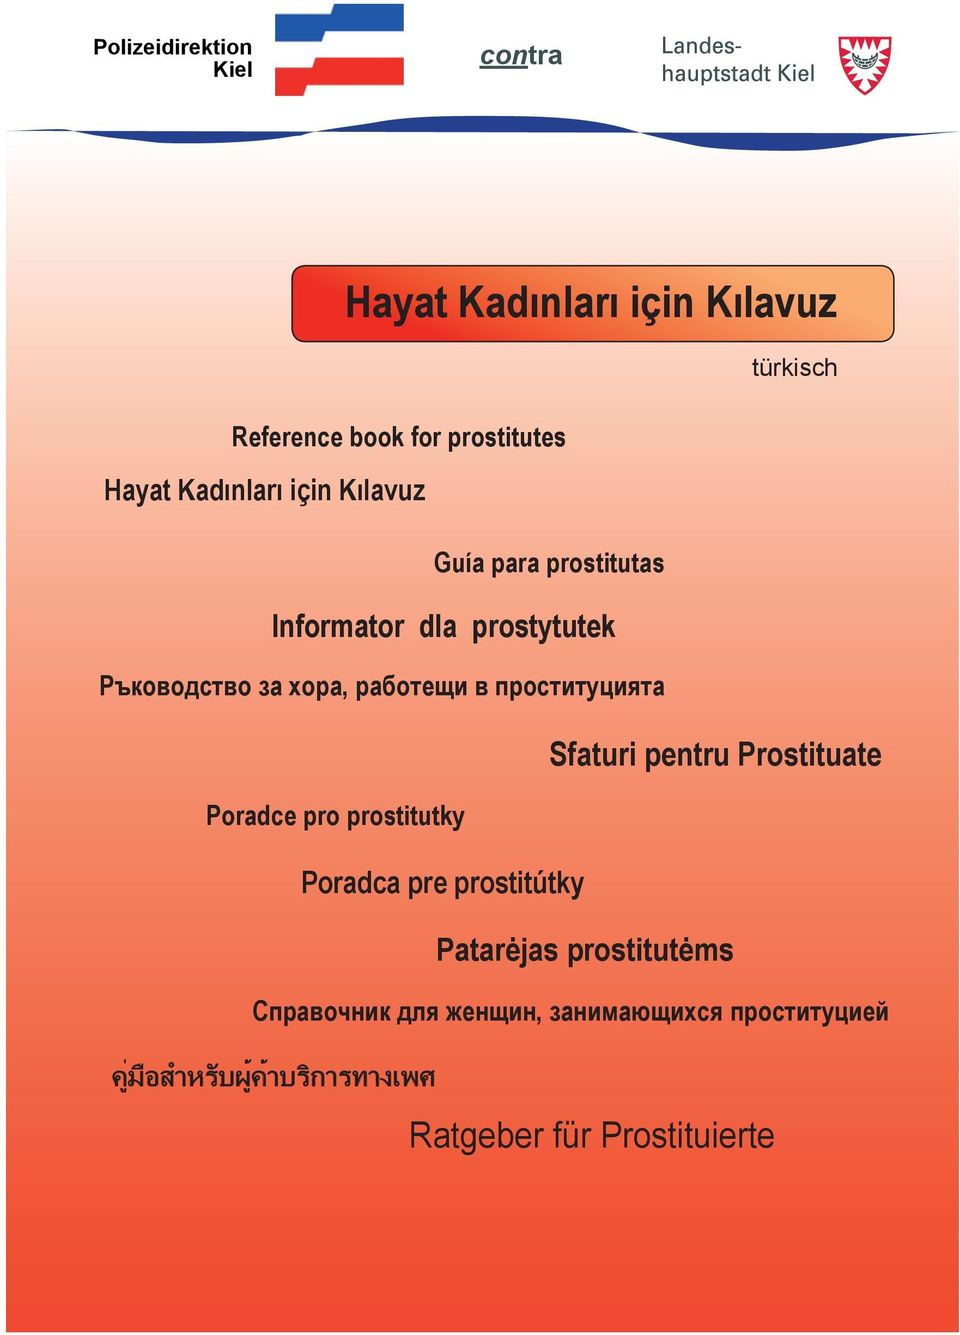 Prostituierte Klavuz Ratgeber Reference book für book for Prostituierte prostitutes for prostitutes Ratgeber für Prostituie Reference book for prostitutes Reference book for prostitutes Reference